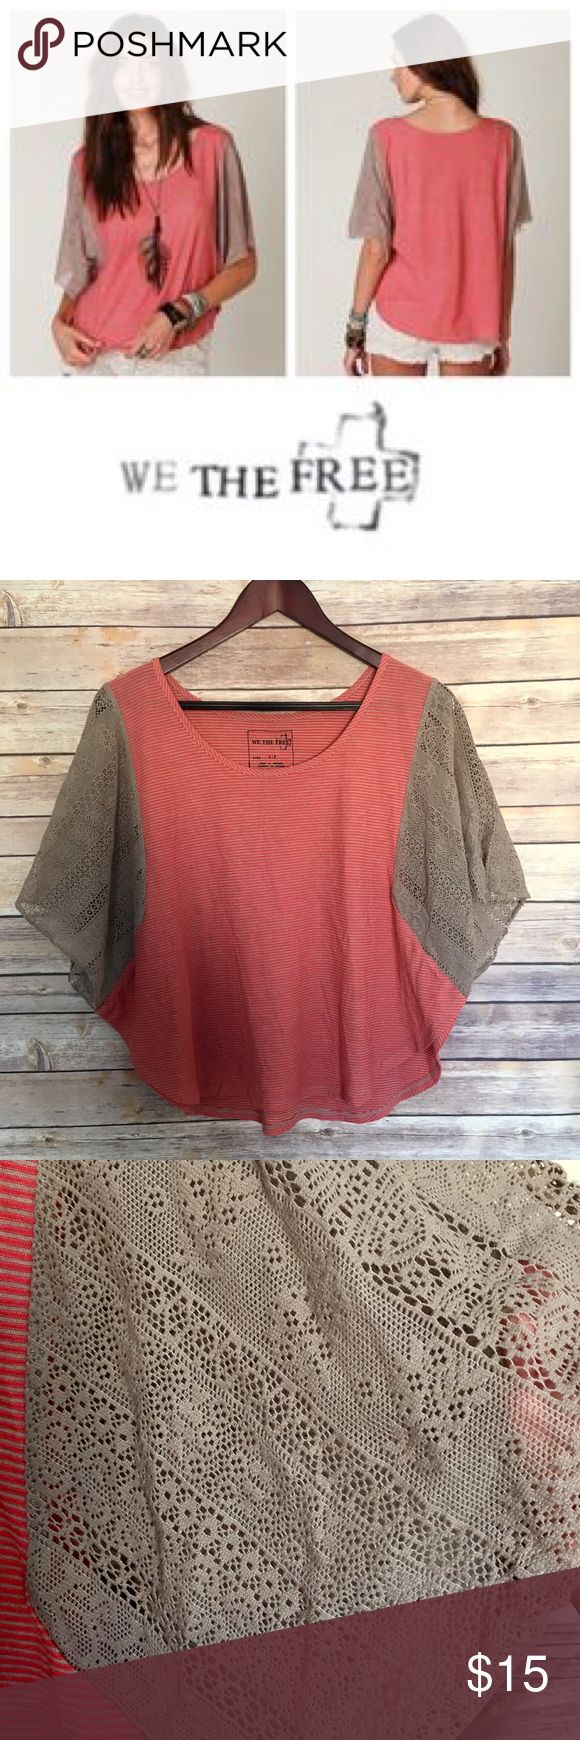 "We The Free Free People Lace Striped Batwing Top We The Free Free People striped batwing top with laced detail.  Women's size small.  Has lace detail on batwing sleeves, beige/brown stripes on top.  Body is 60% cotton, 40% polyester.  Lace is 80% nylon, 10% spandex.  Pre-owned, great condition.  Armpit to armpit- 15"" length- 22.5"" Free People Tops"